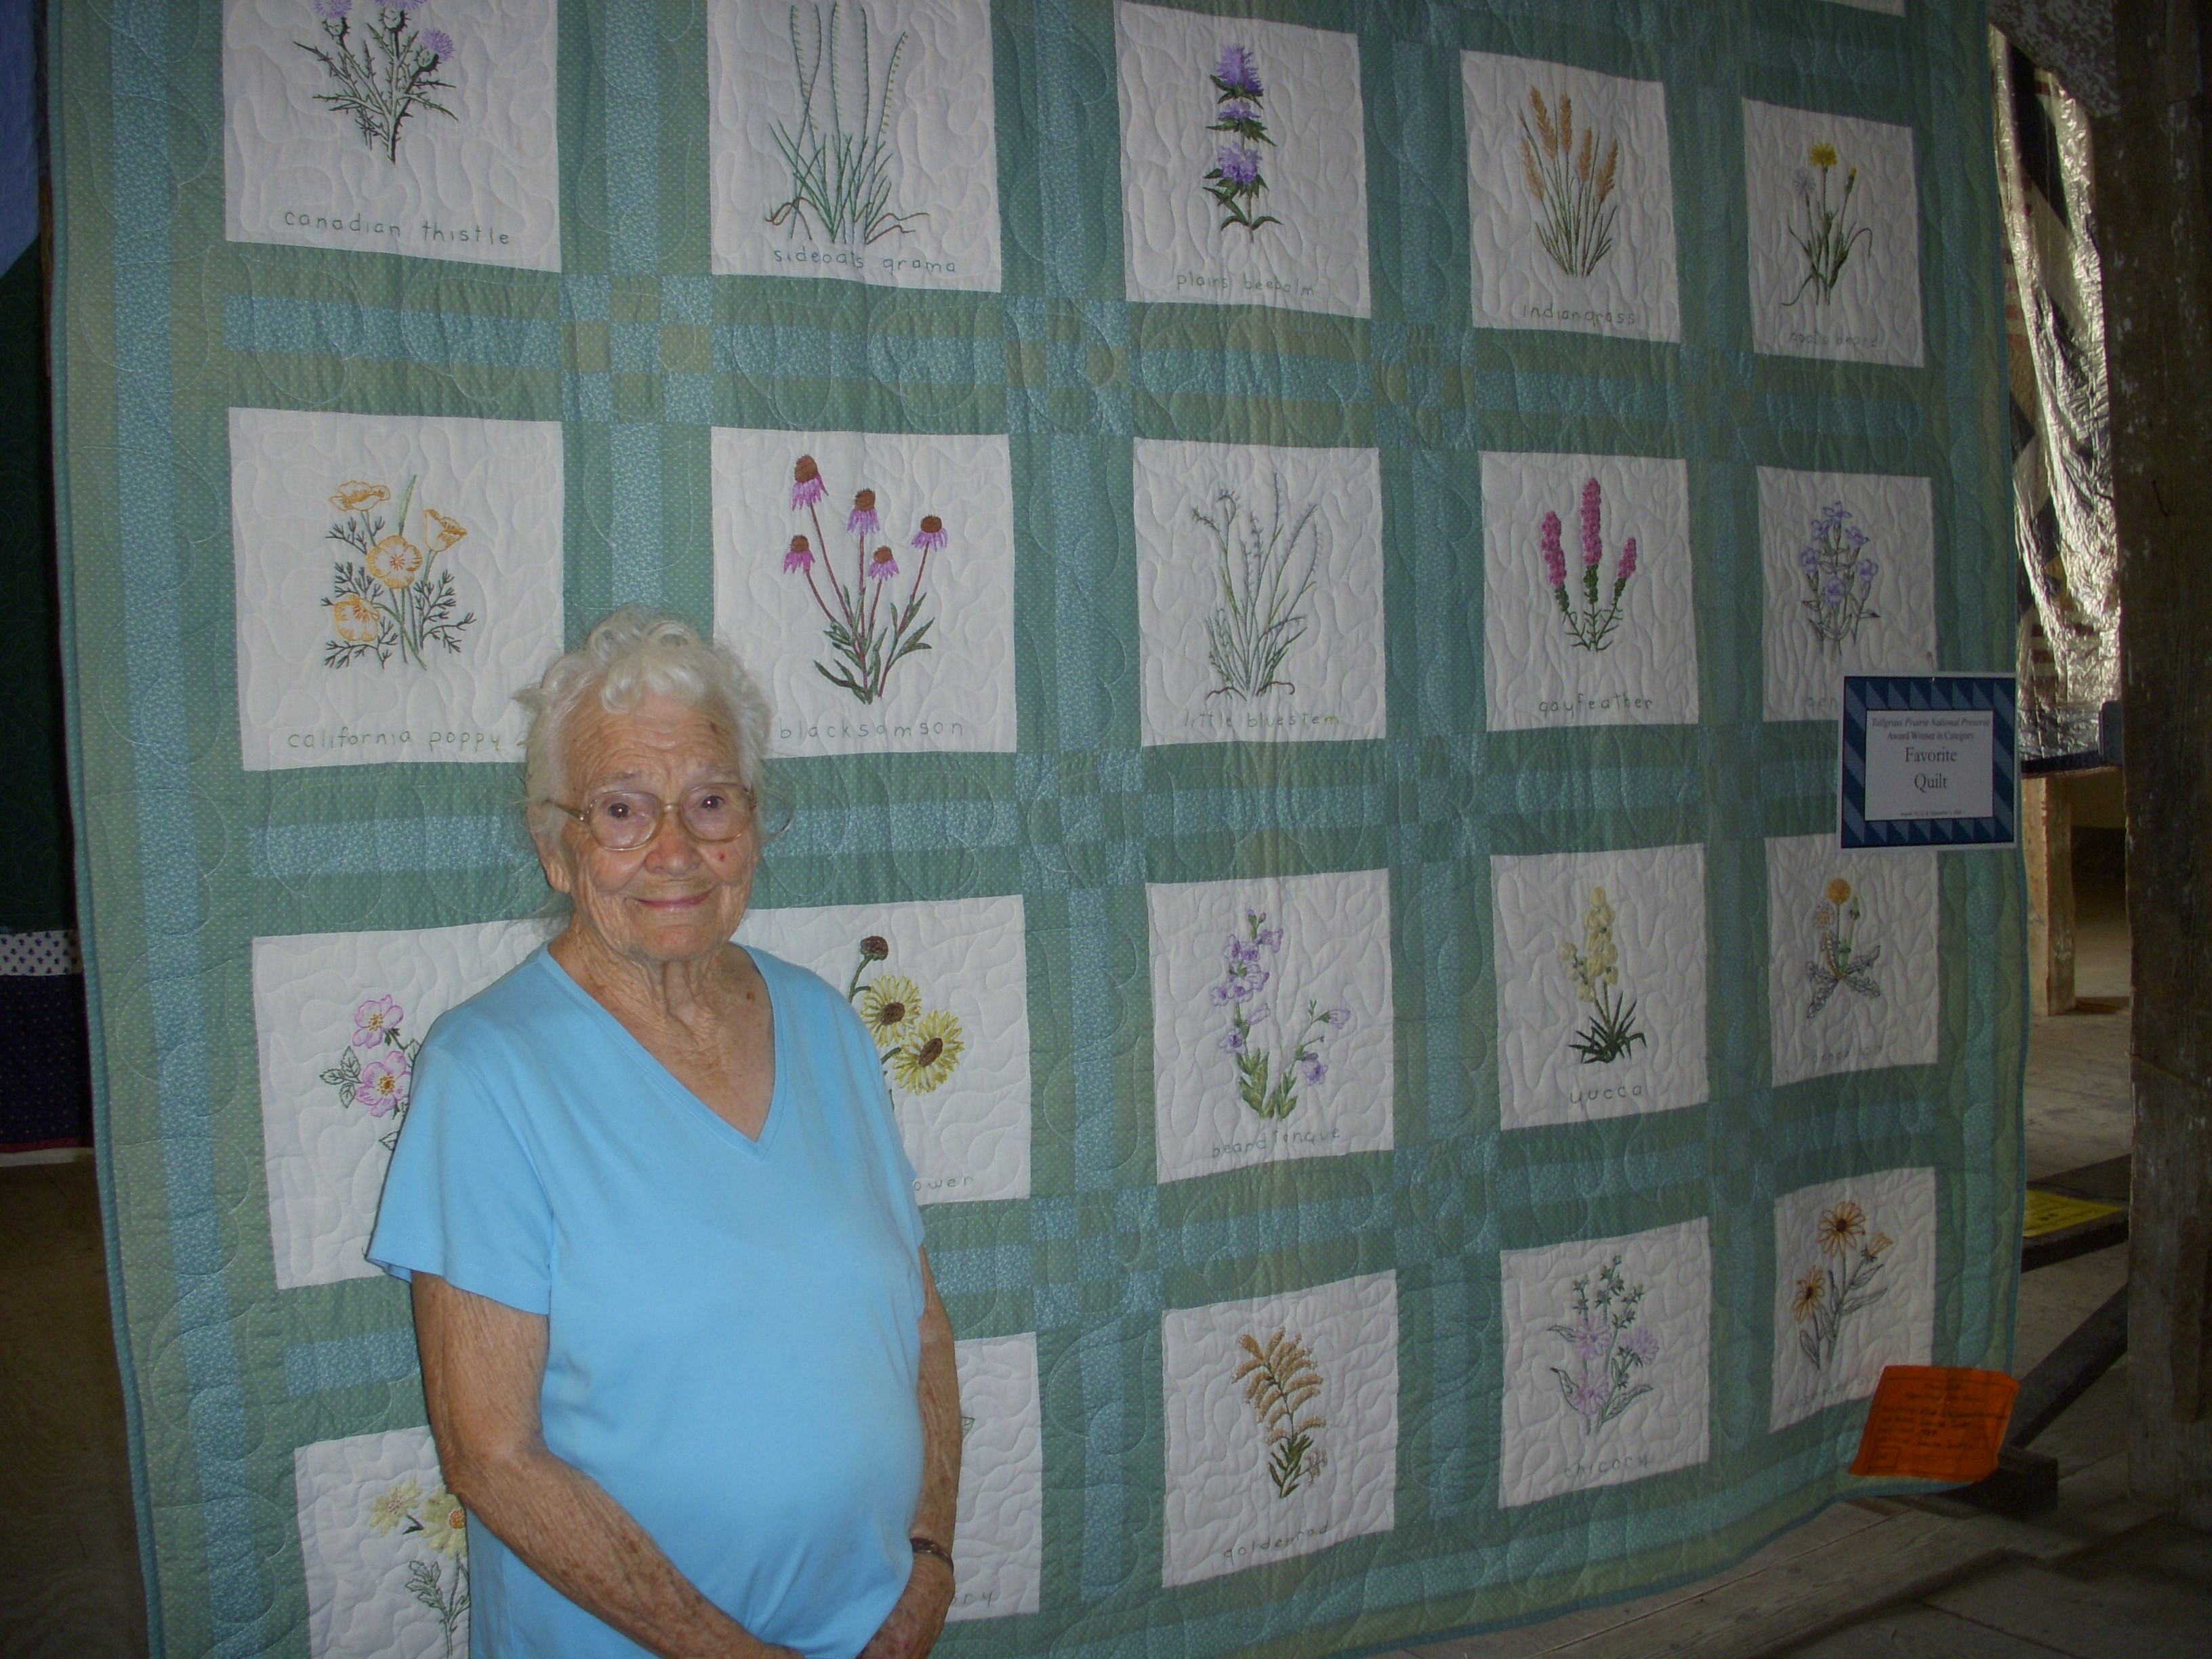 Winner of the Favorite Quilt at the 2008 Quilt Display at the Preserve